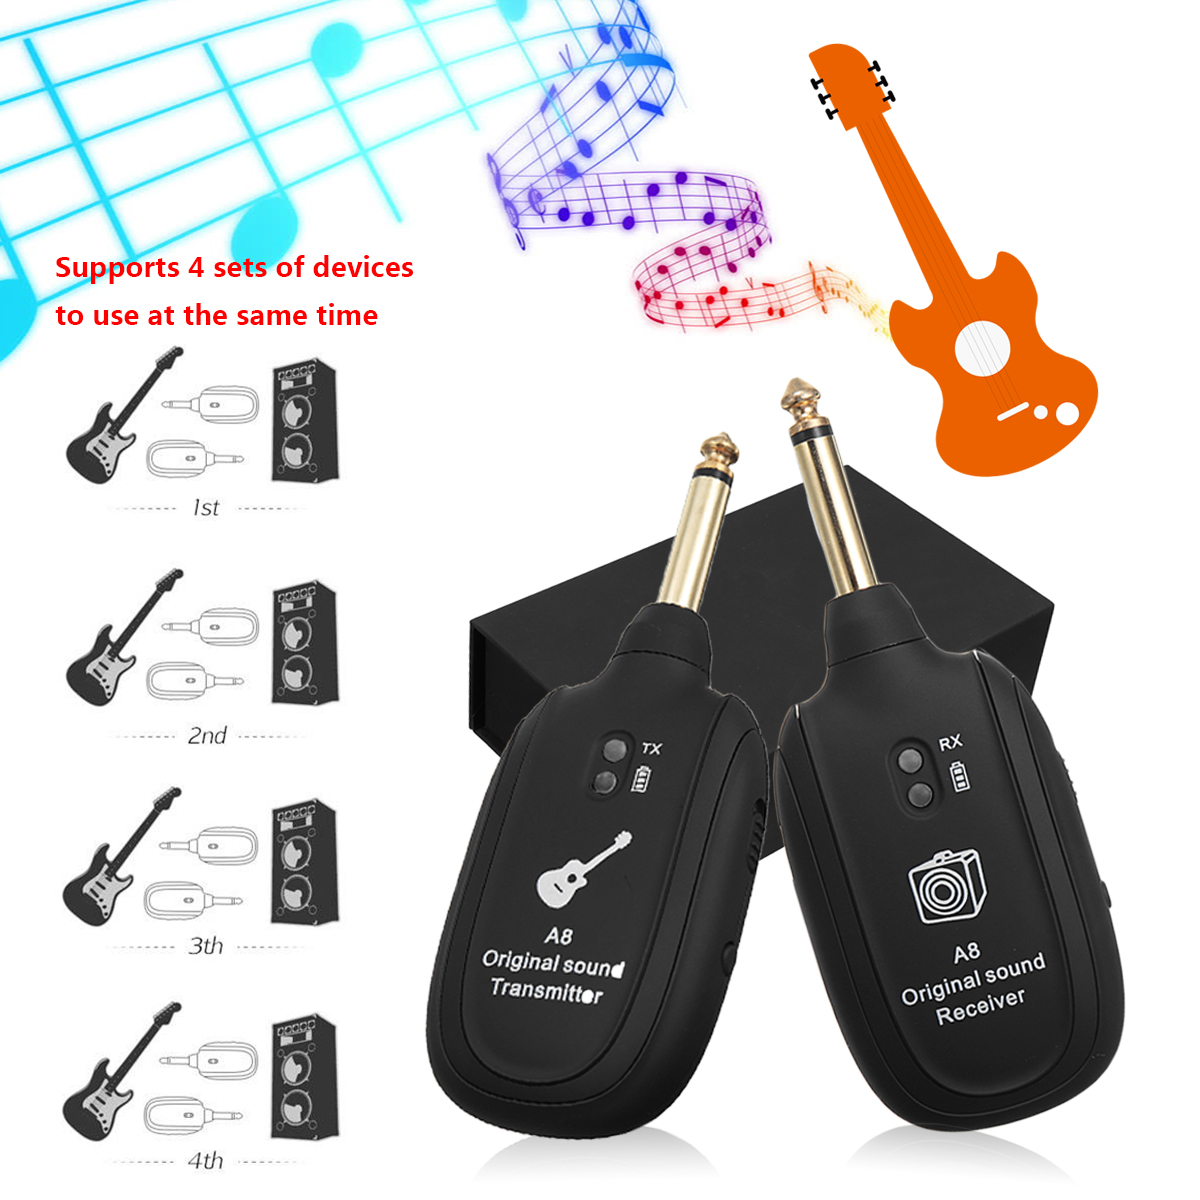 High Quality Rechargeable Uhf Digital Audio Wireless Electric Modify Acoustic Into The Guitar On Fm Transmitter Receiver System For Violin Instrument Anti Jamming Black Plastic